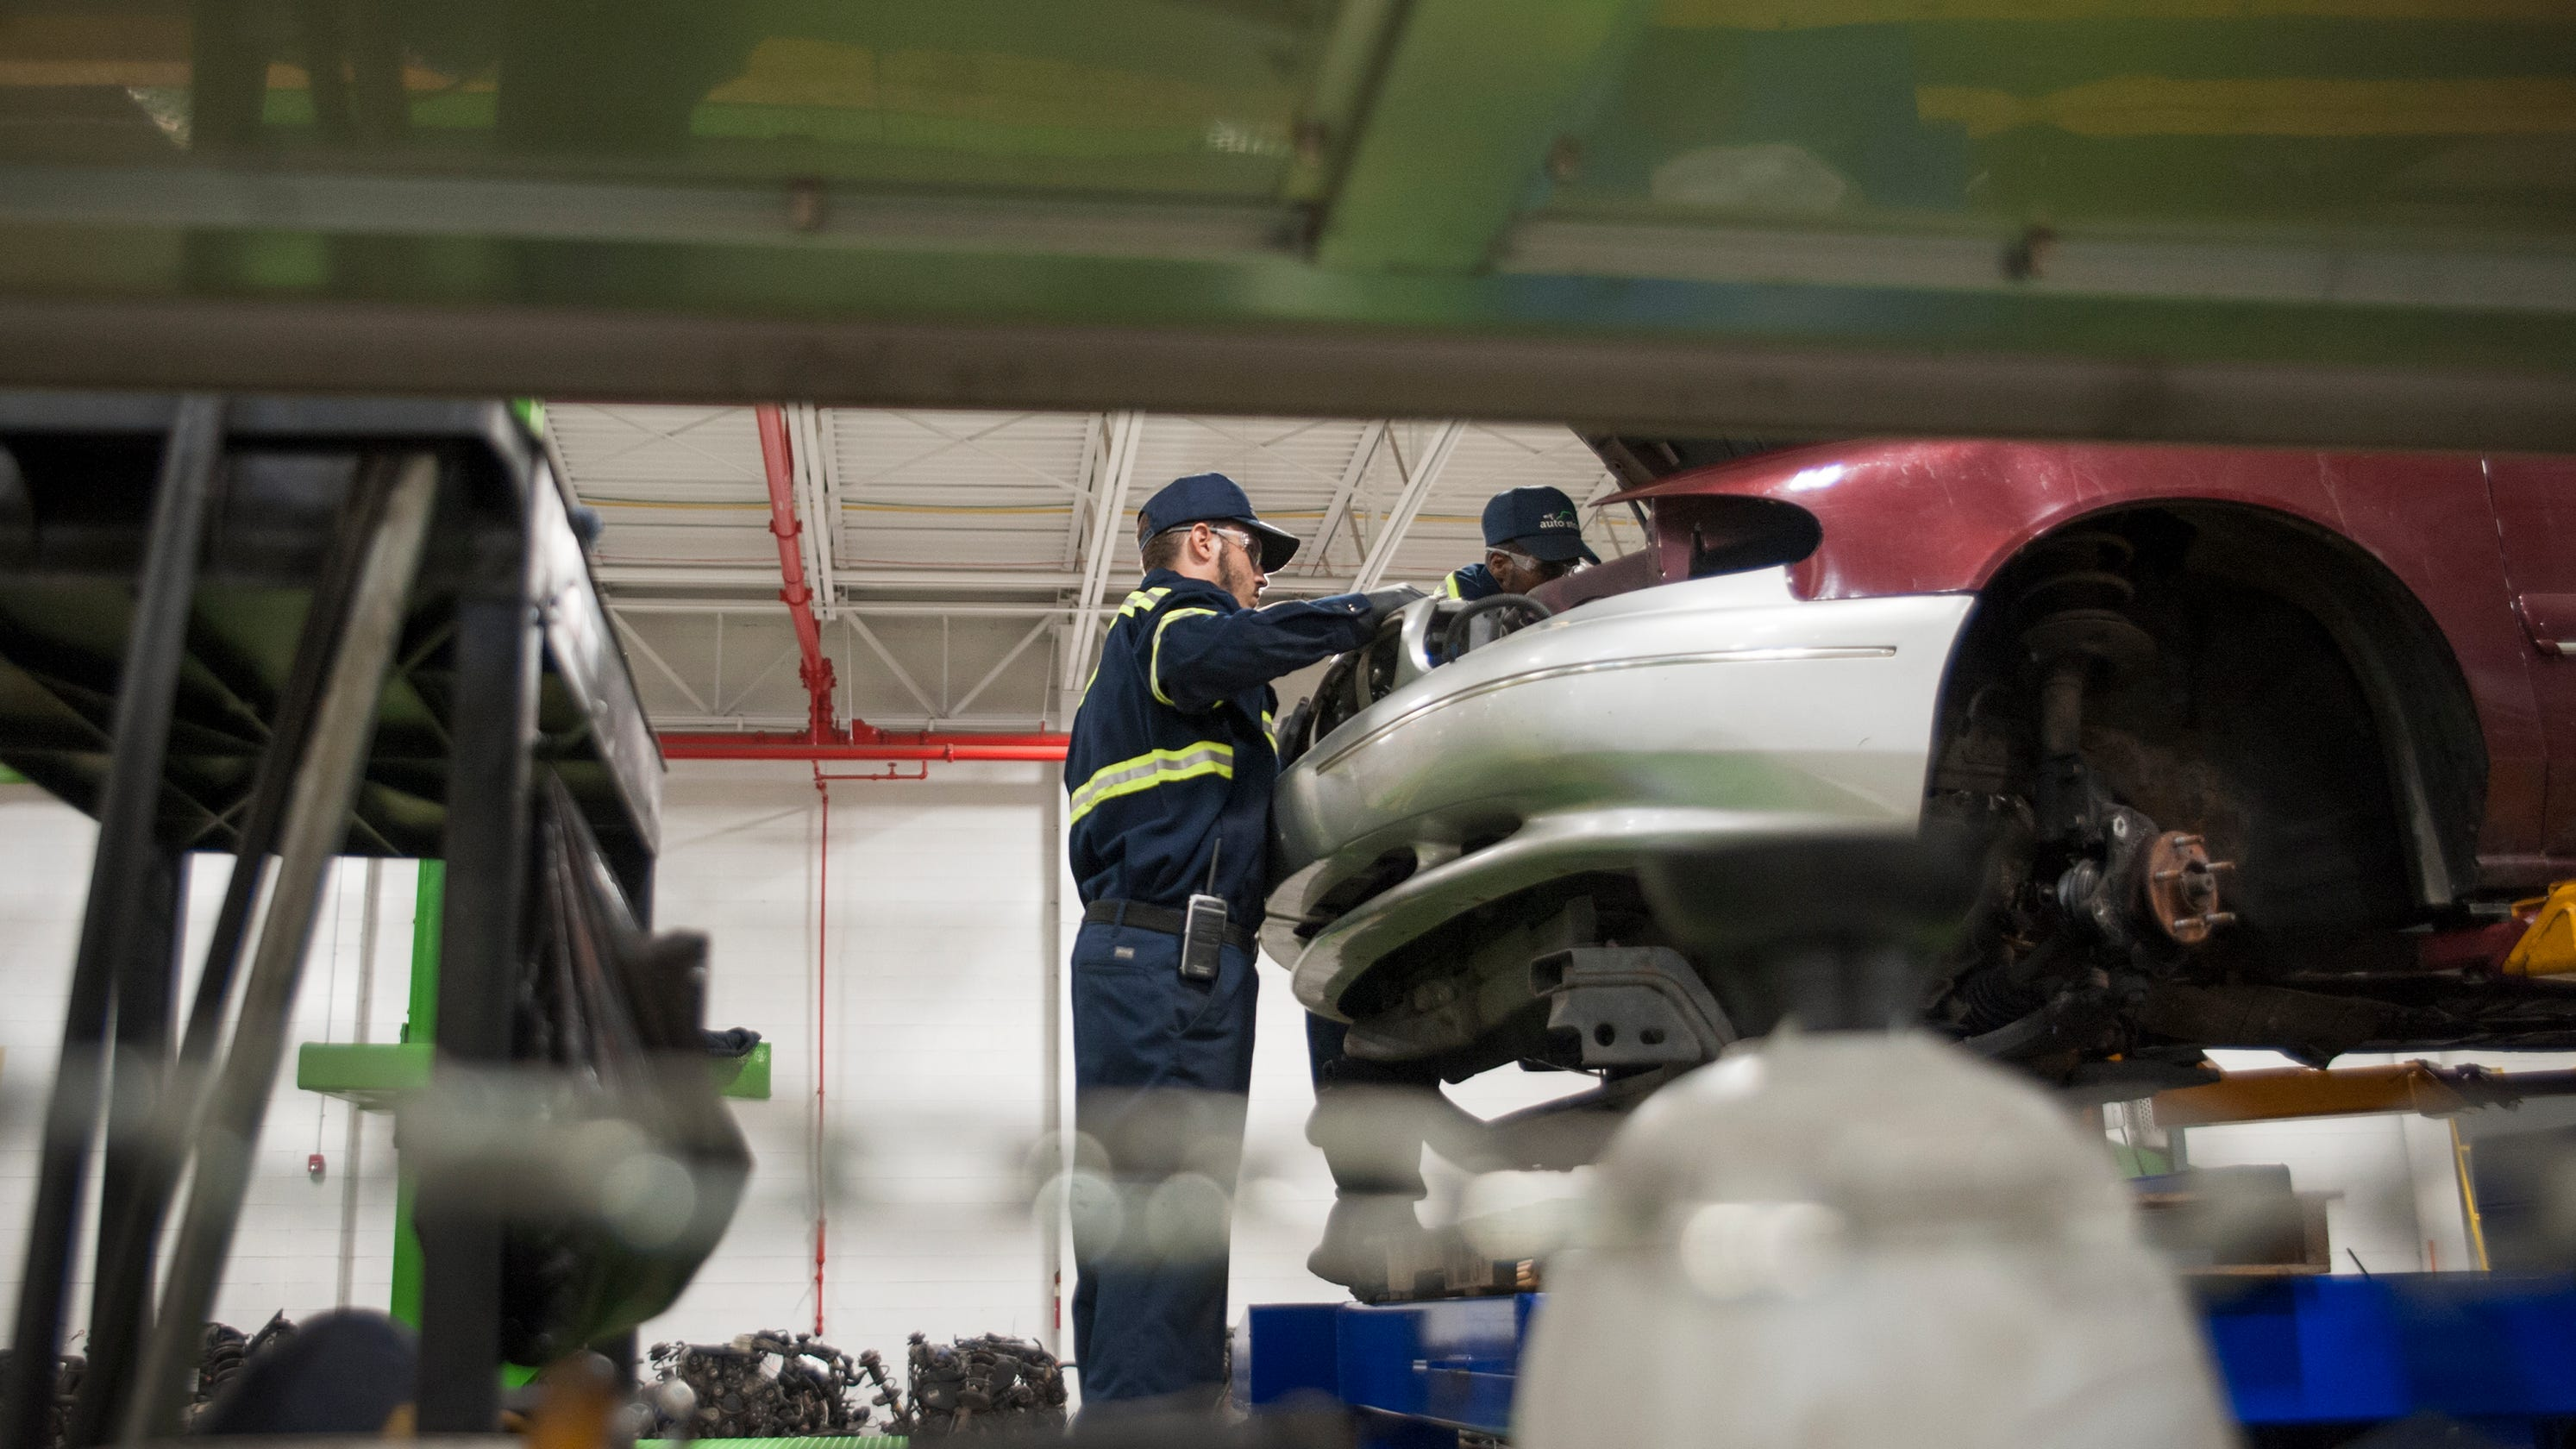 Old car parts mean new job opportunities for Camden